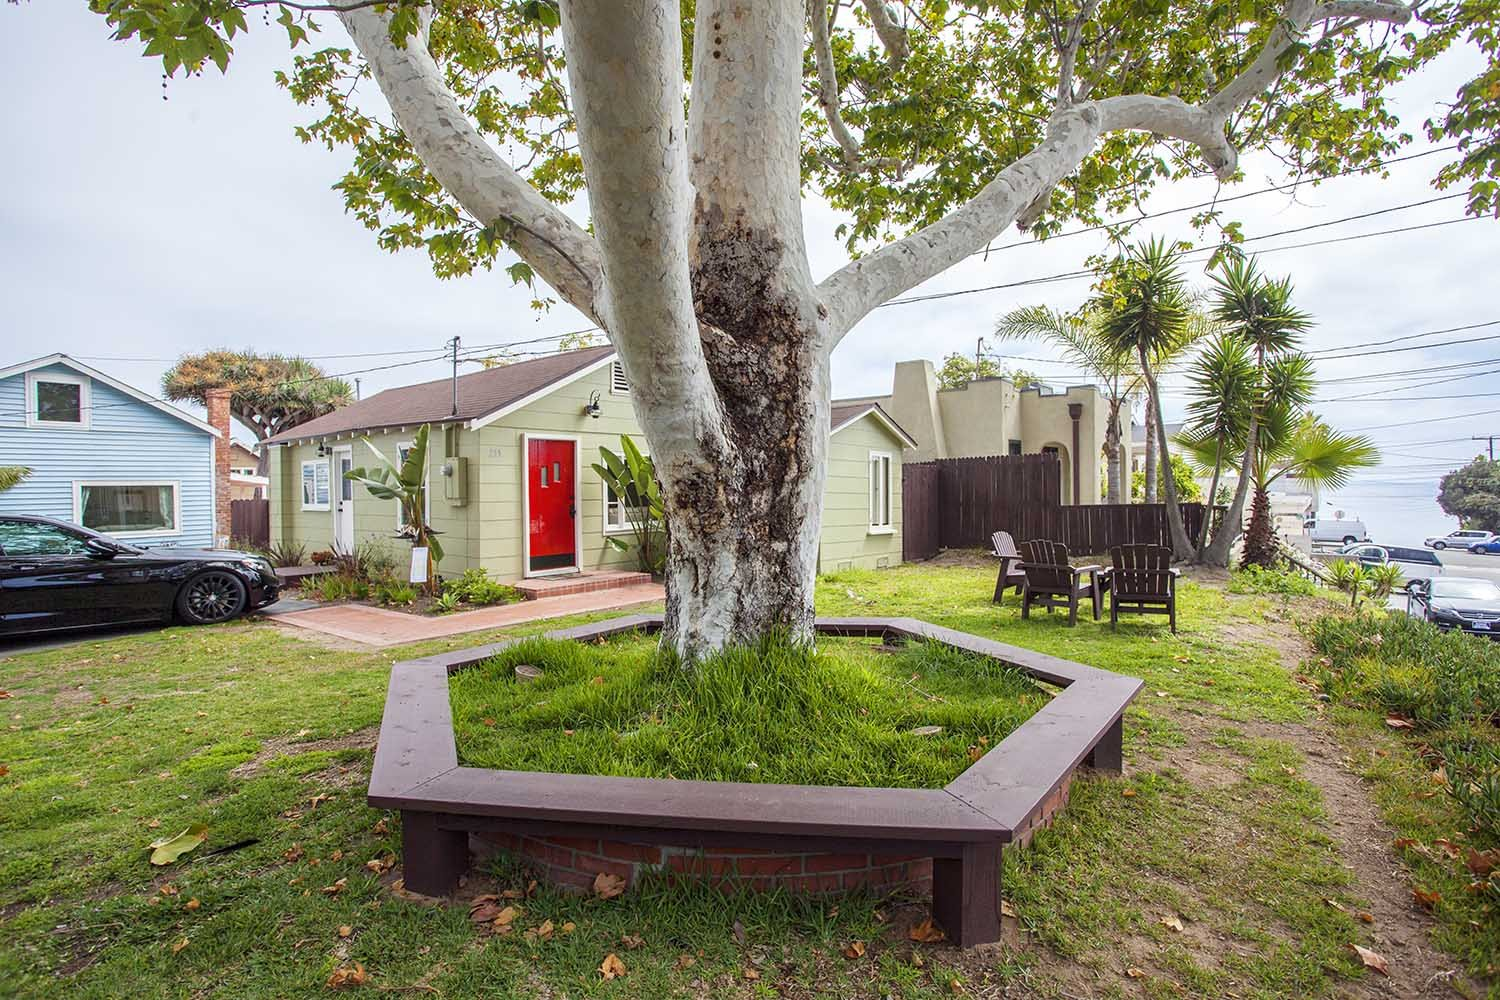 rentals united laguna luxury cottage hillside beach cottages casita with states rooms in for rent views breathtaking california